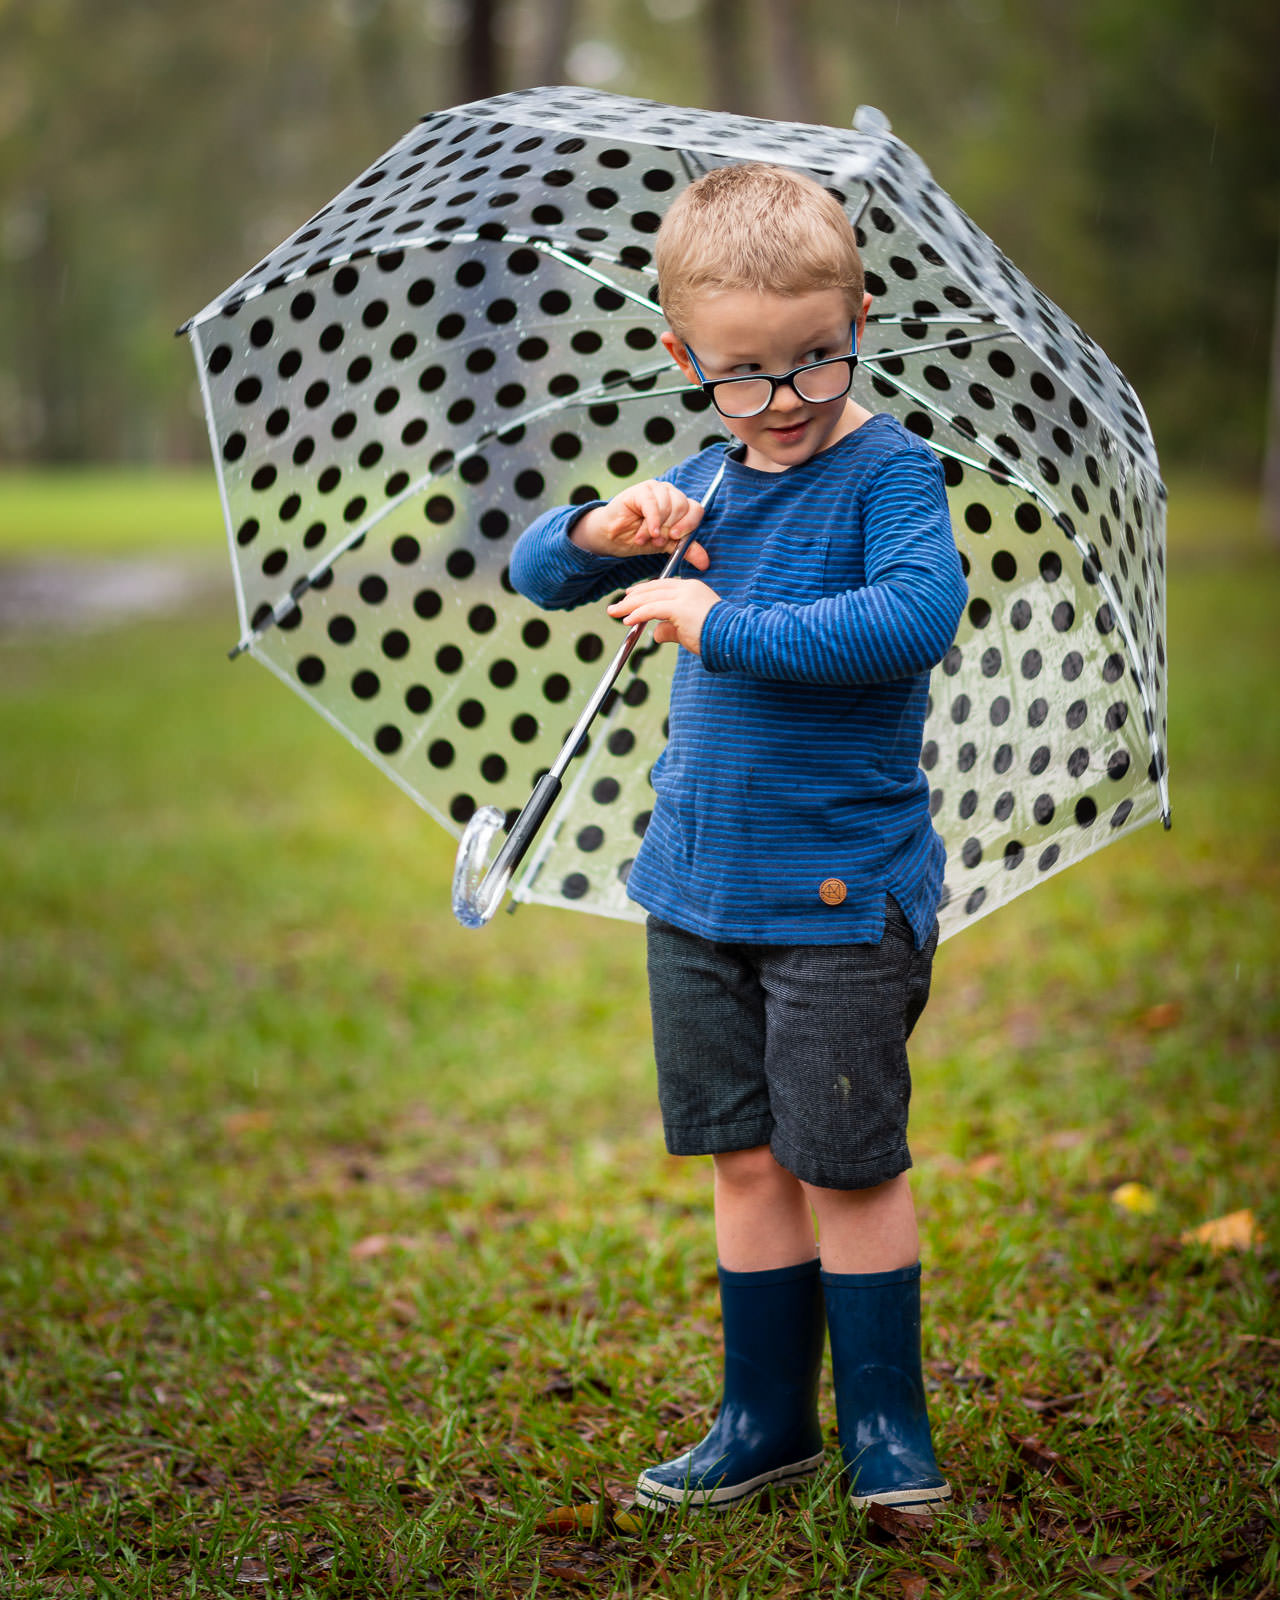 Portrait of child wearing gumboots and holding an umbrella as it rains in a caboolture park | North Brisbane family portrait photographer